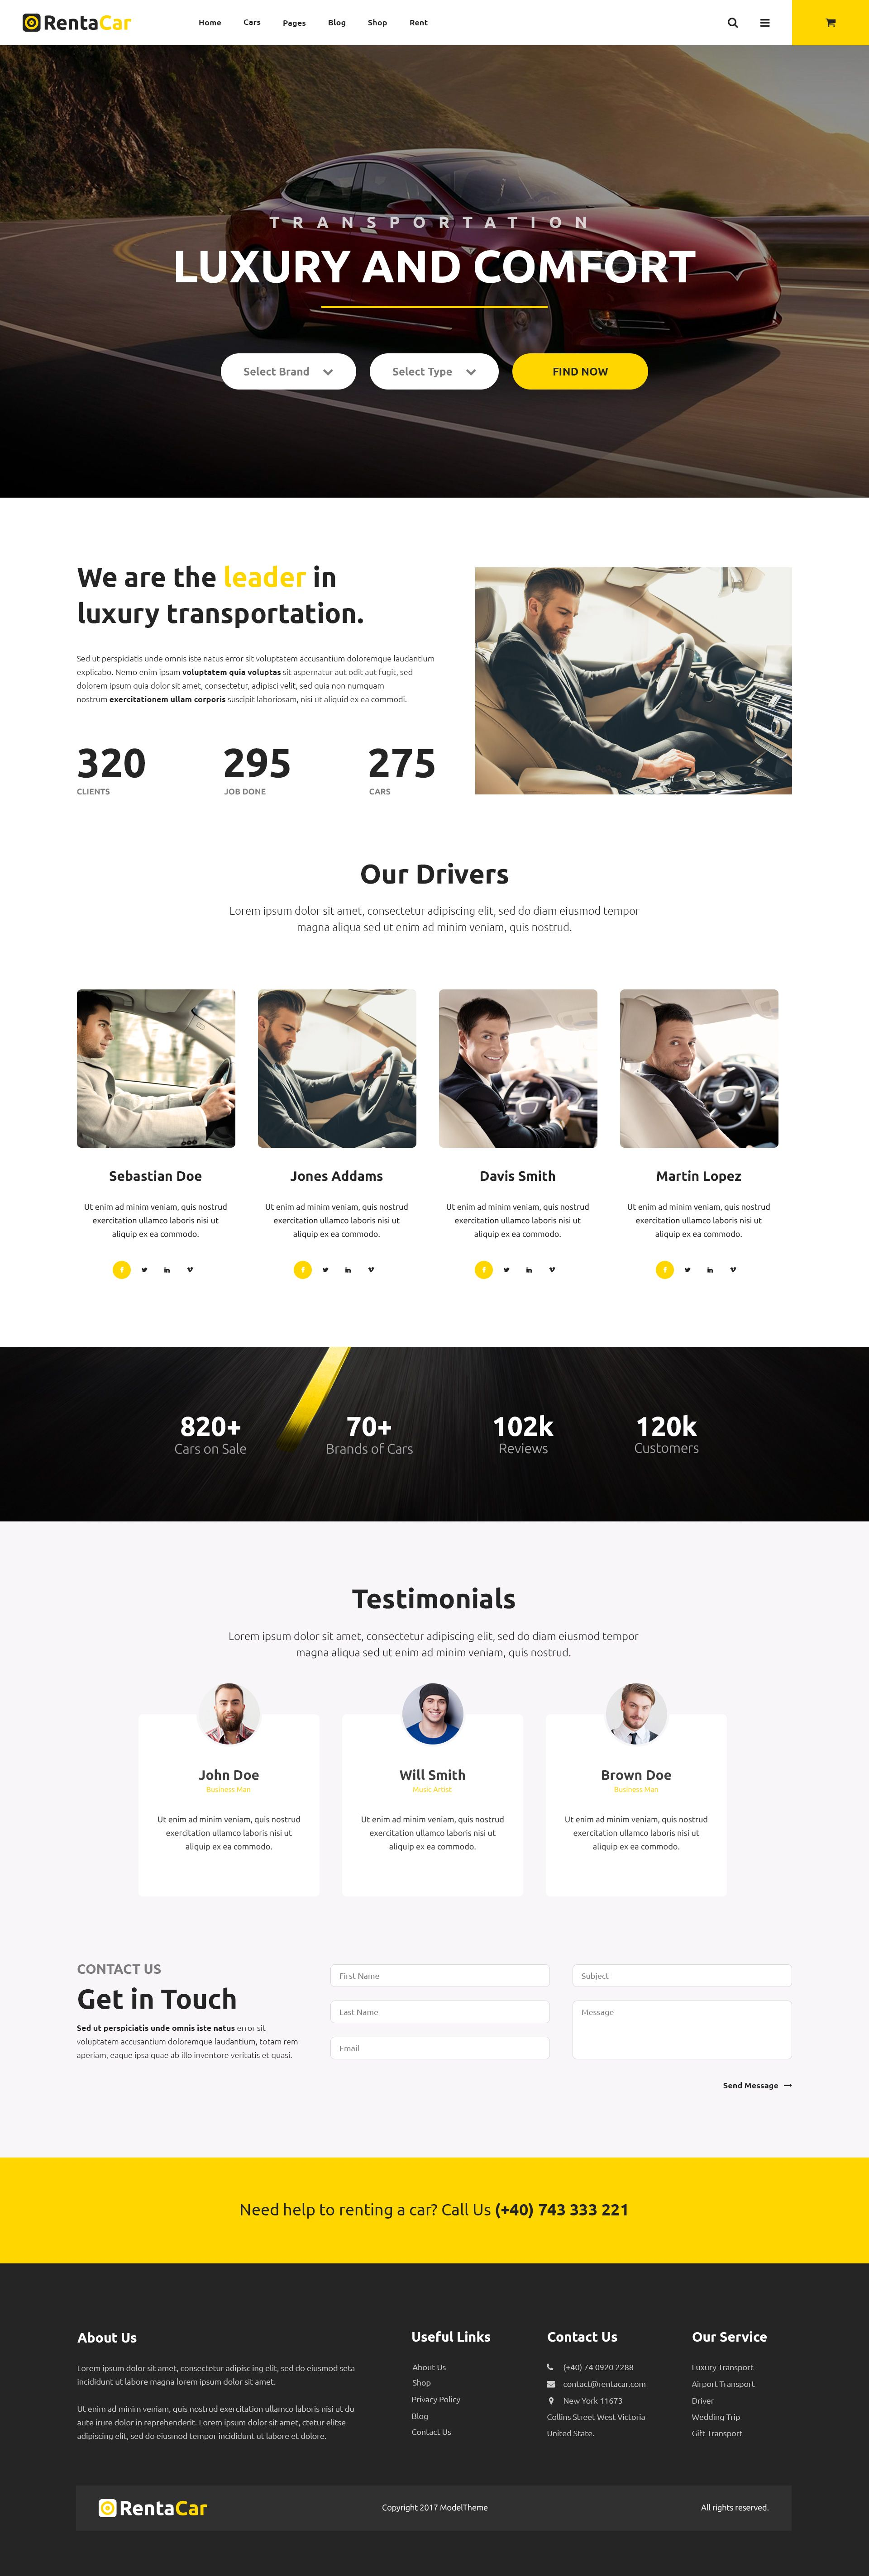 Check out our Luxury Transport Website - Rentacar theme by ModelTheme